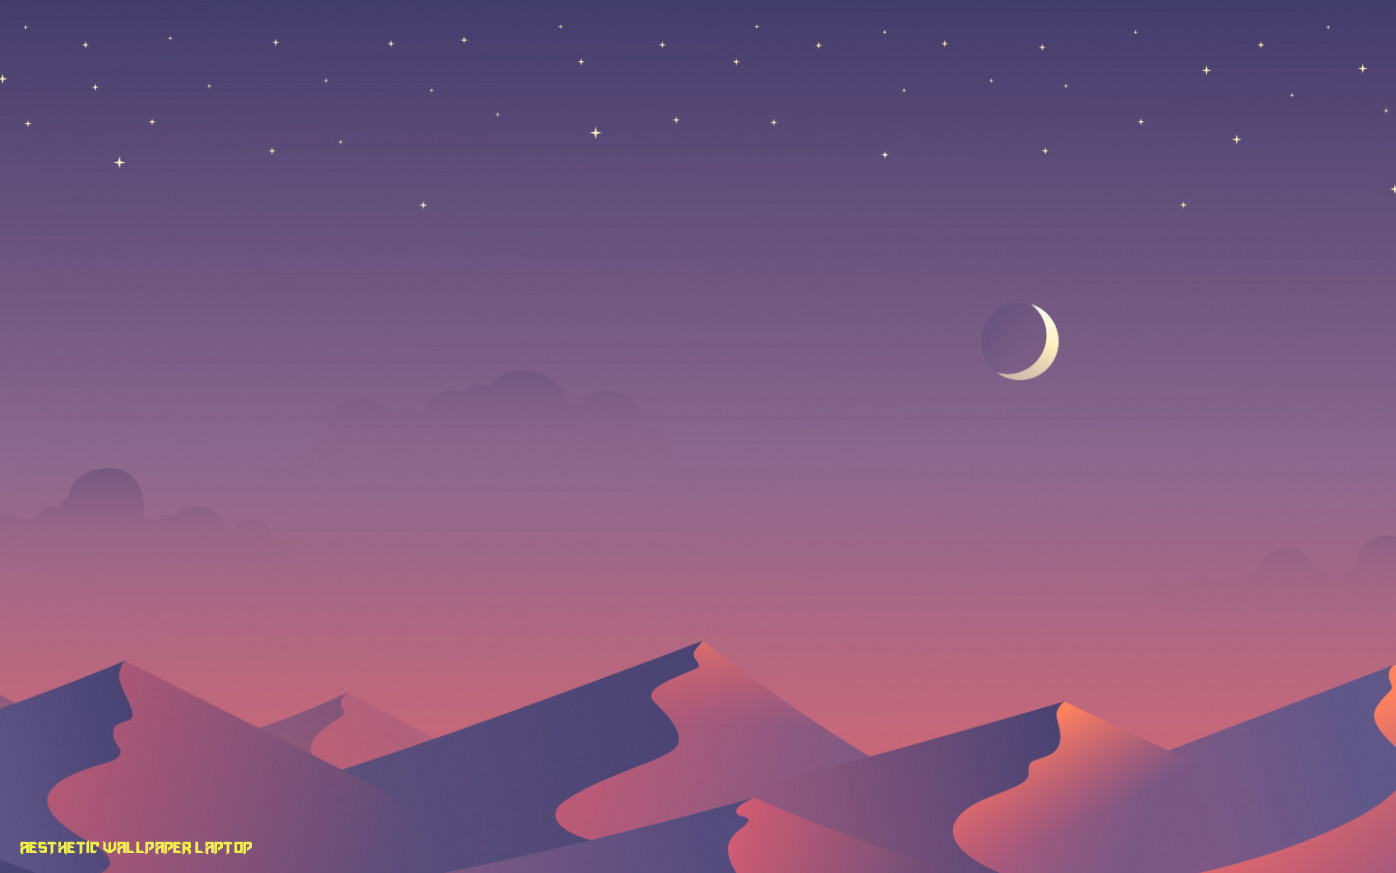 50 Night Aesthetic 4k Wallpapers On Wallpapersafari